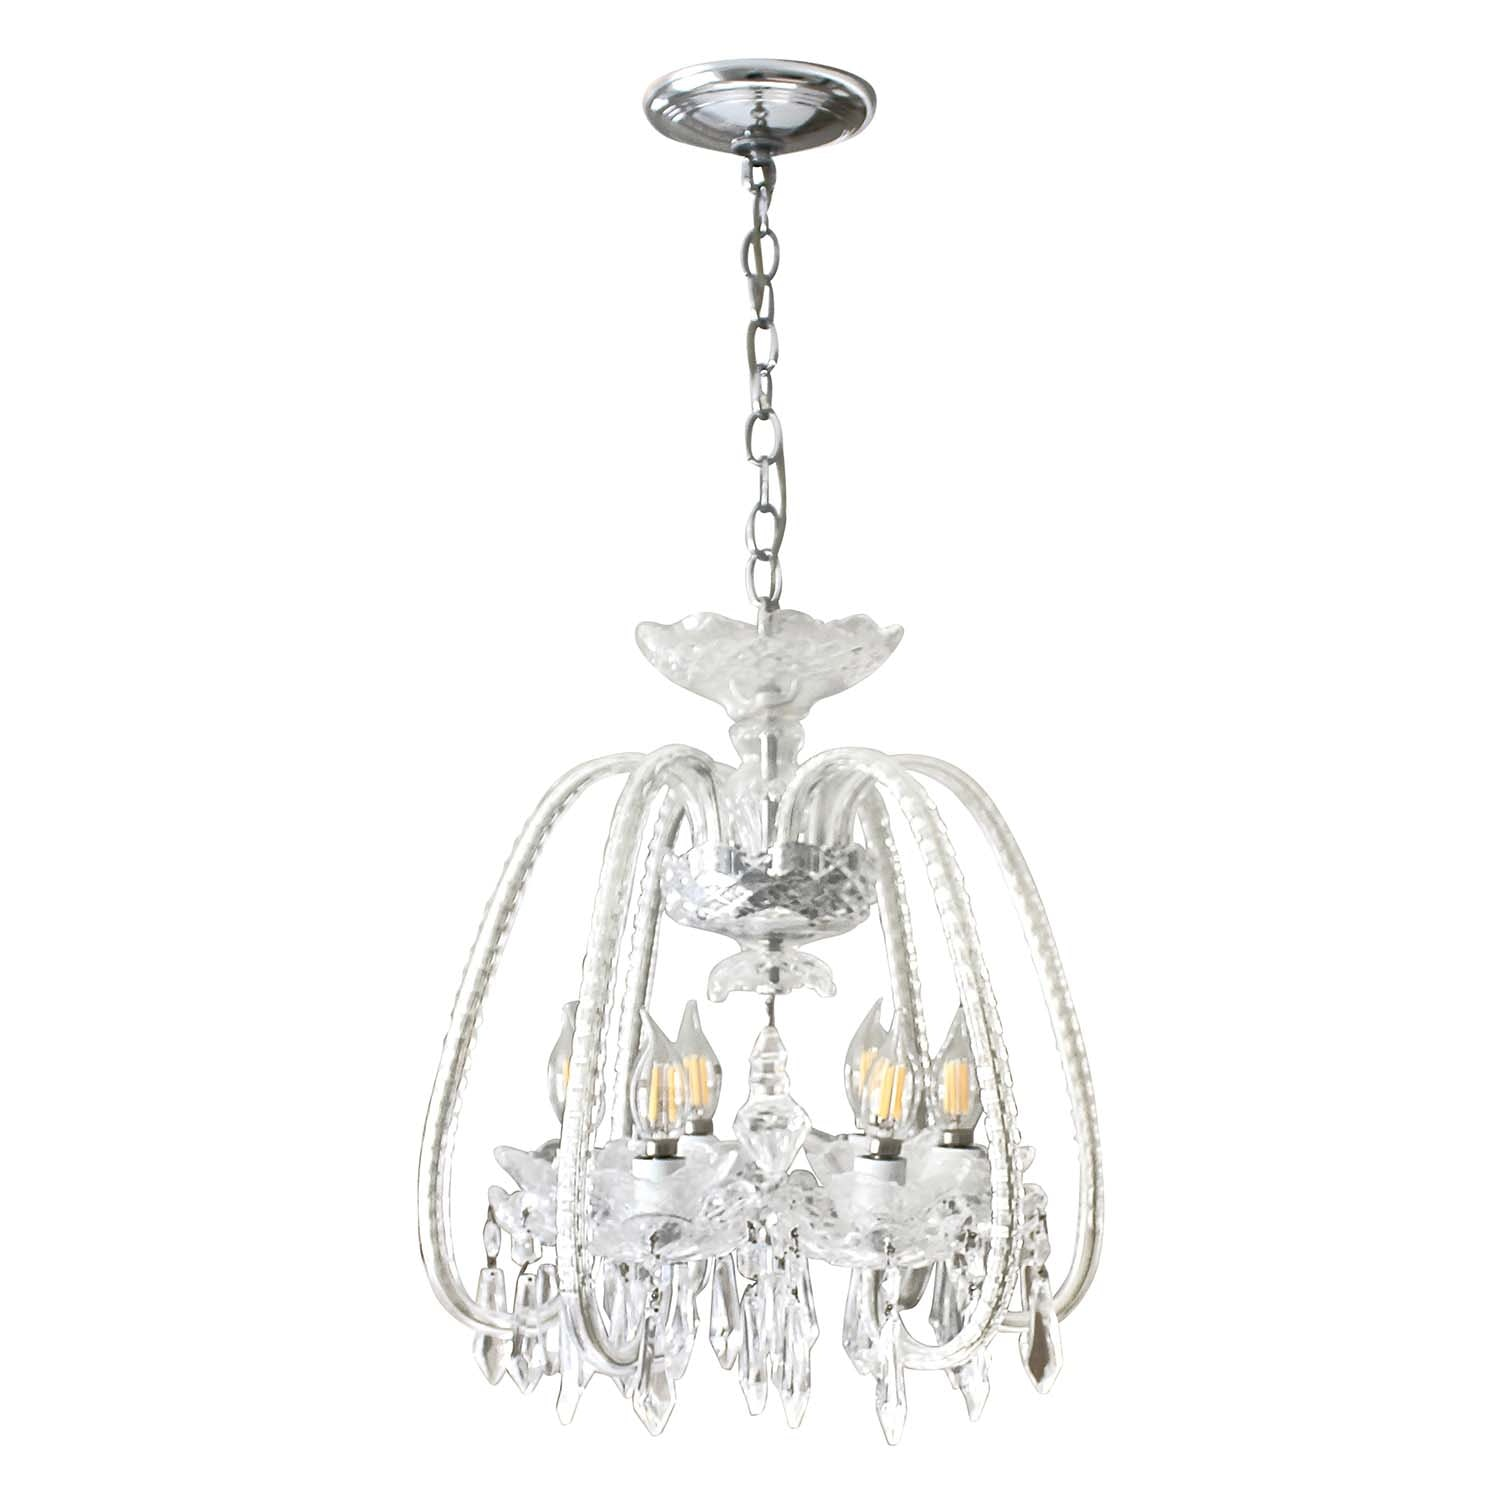 Waterford Crystal Six-Arm Chandelier